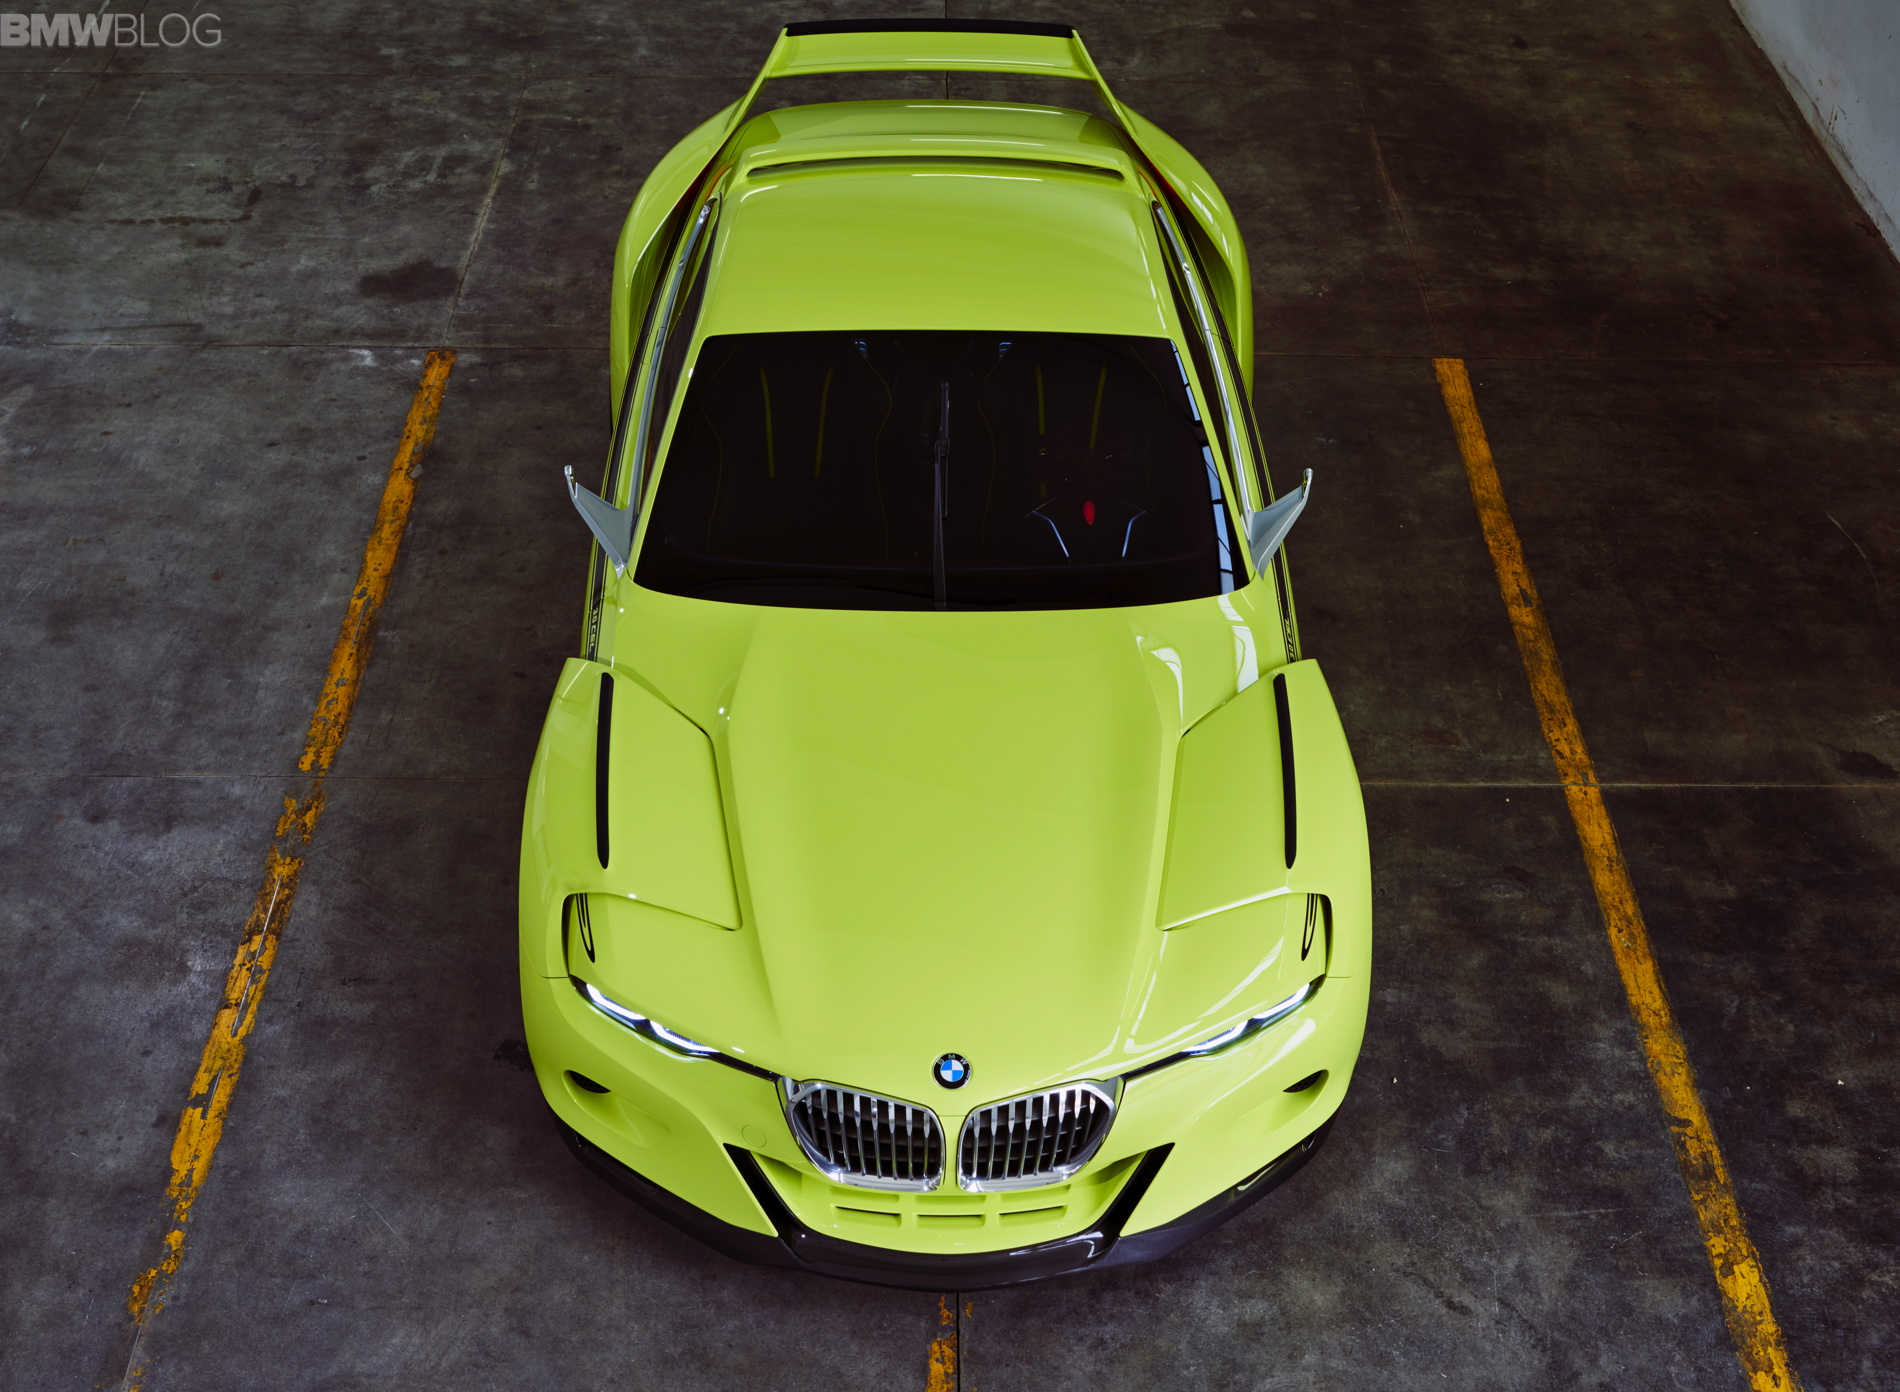 bmw 3 0 csl hommage 1900x1200 wallpapers 08